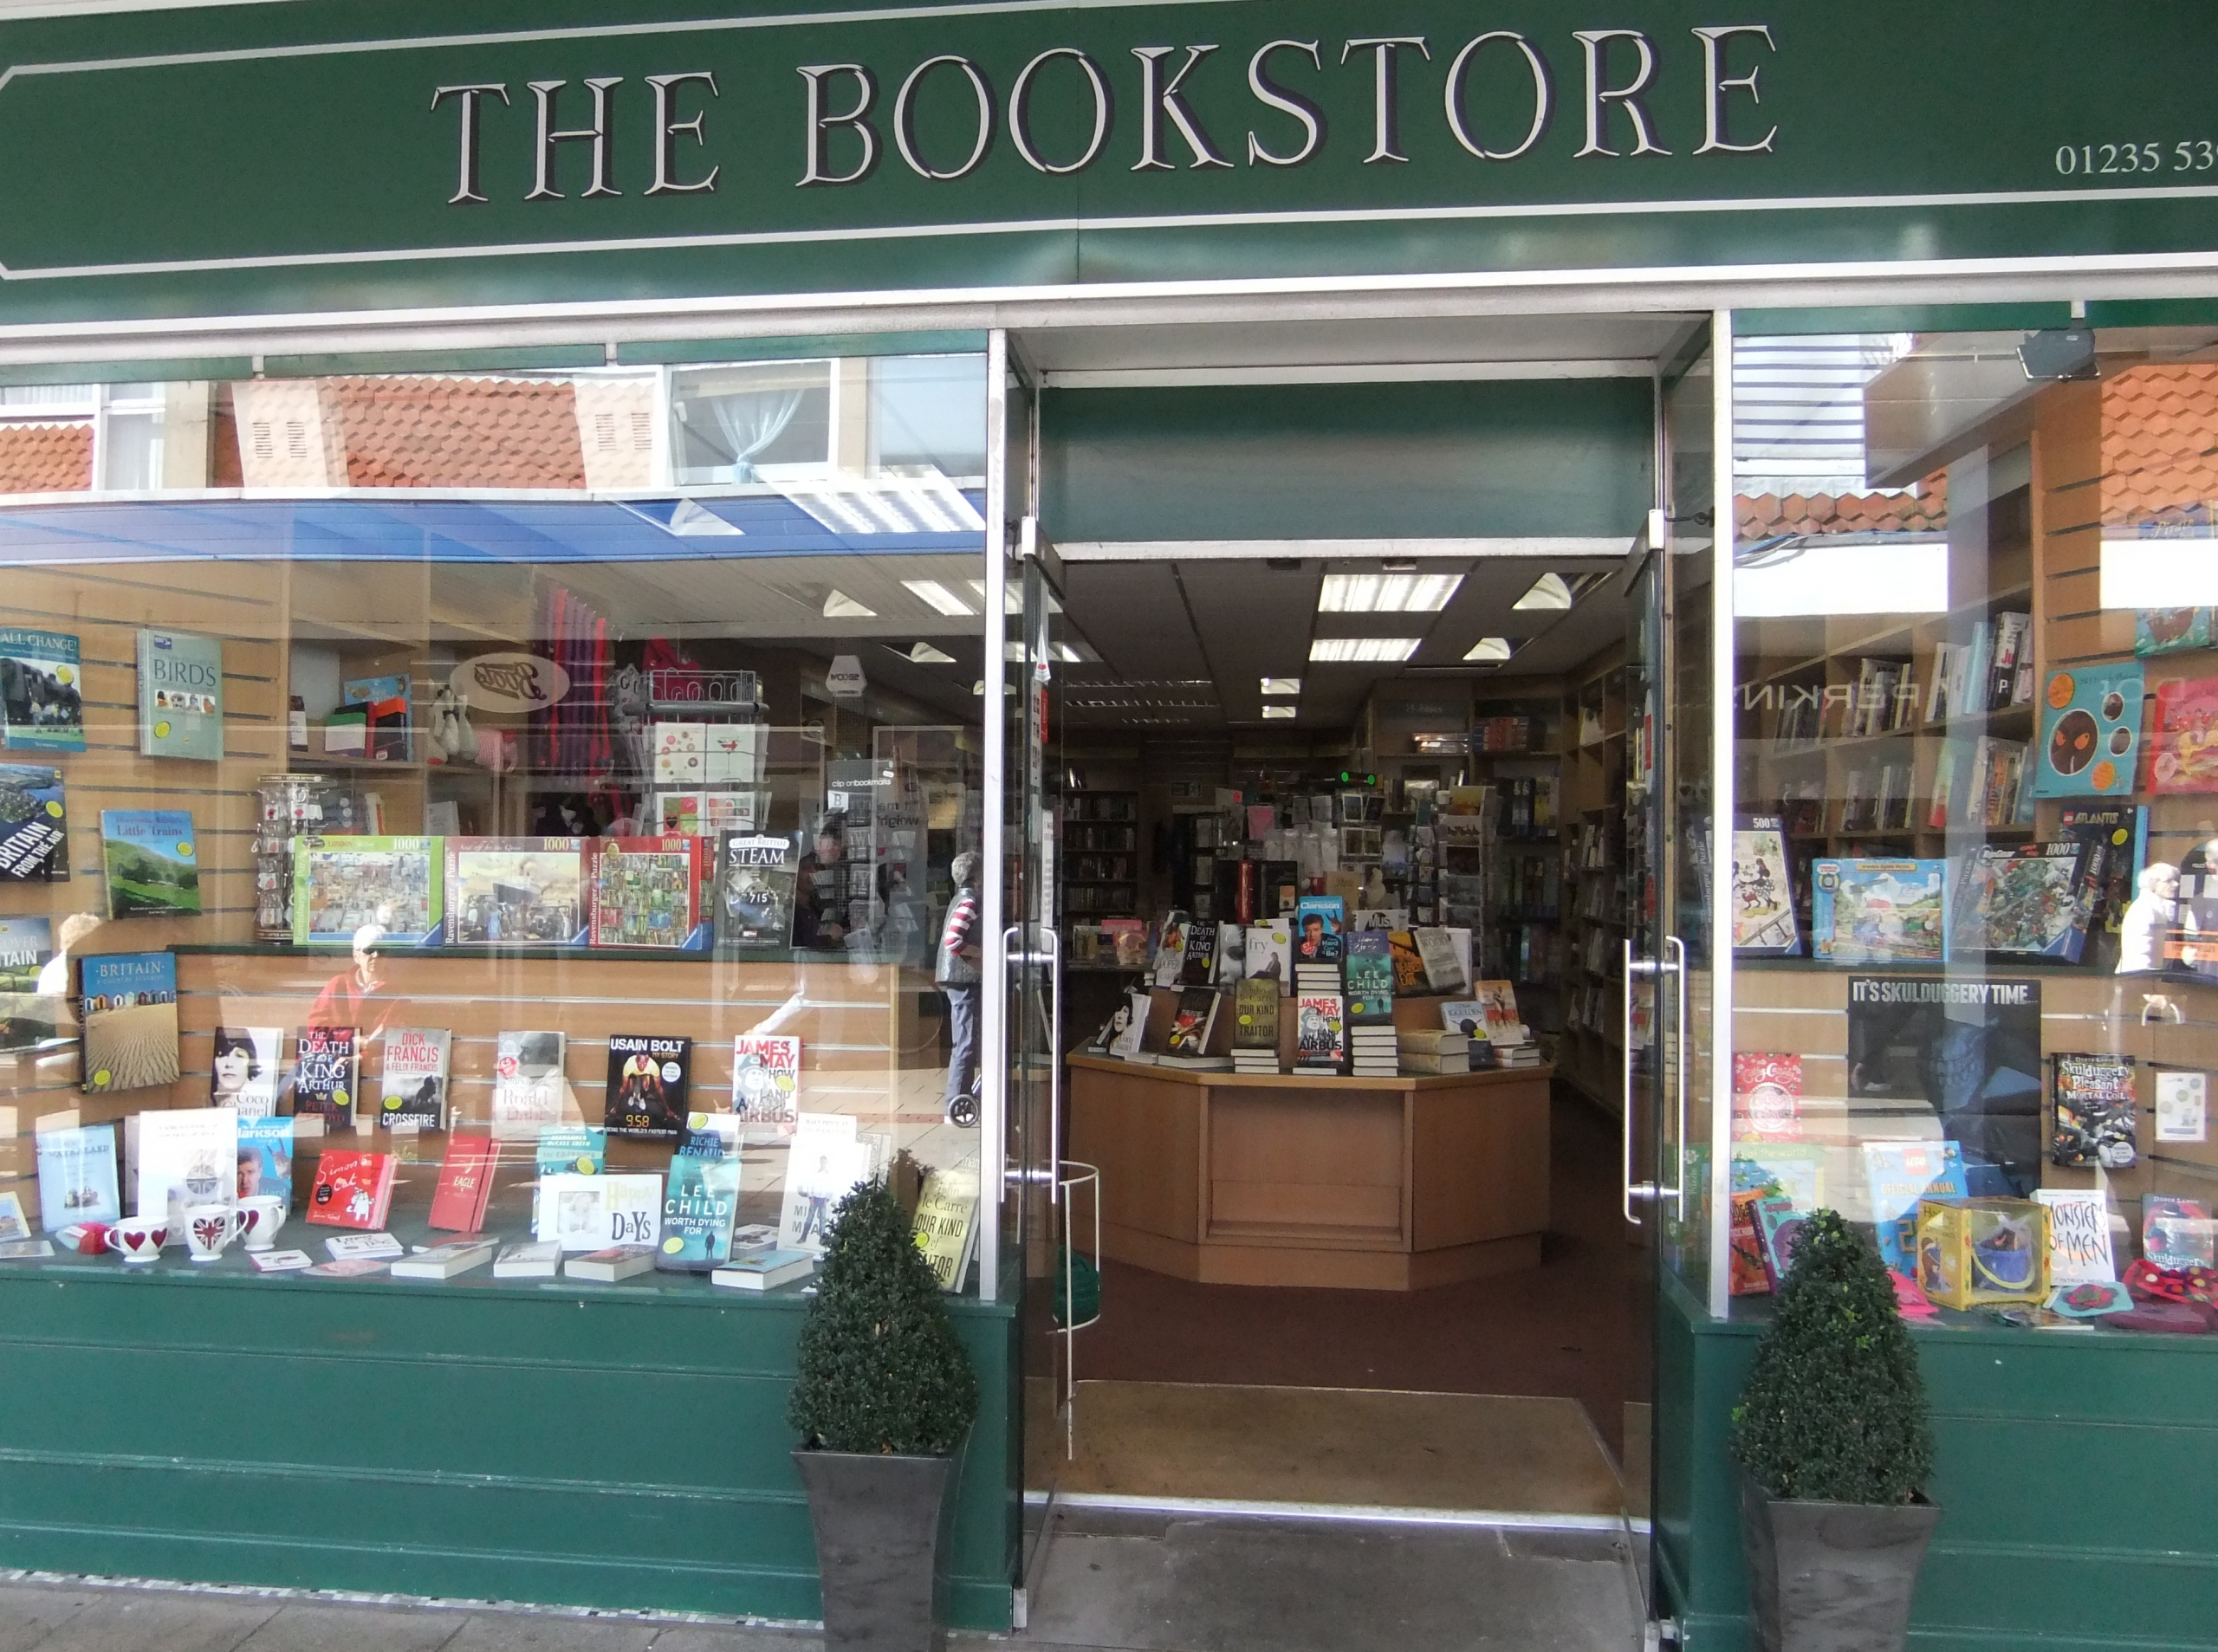 The front of The Bookstore in Bury Street